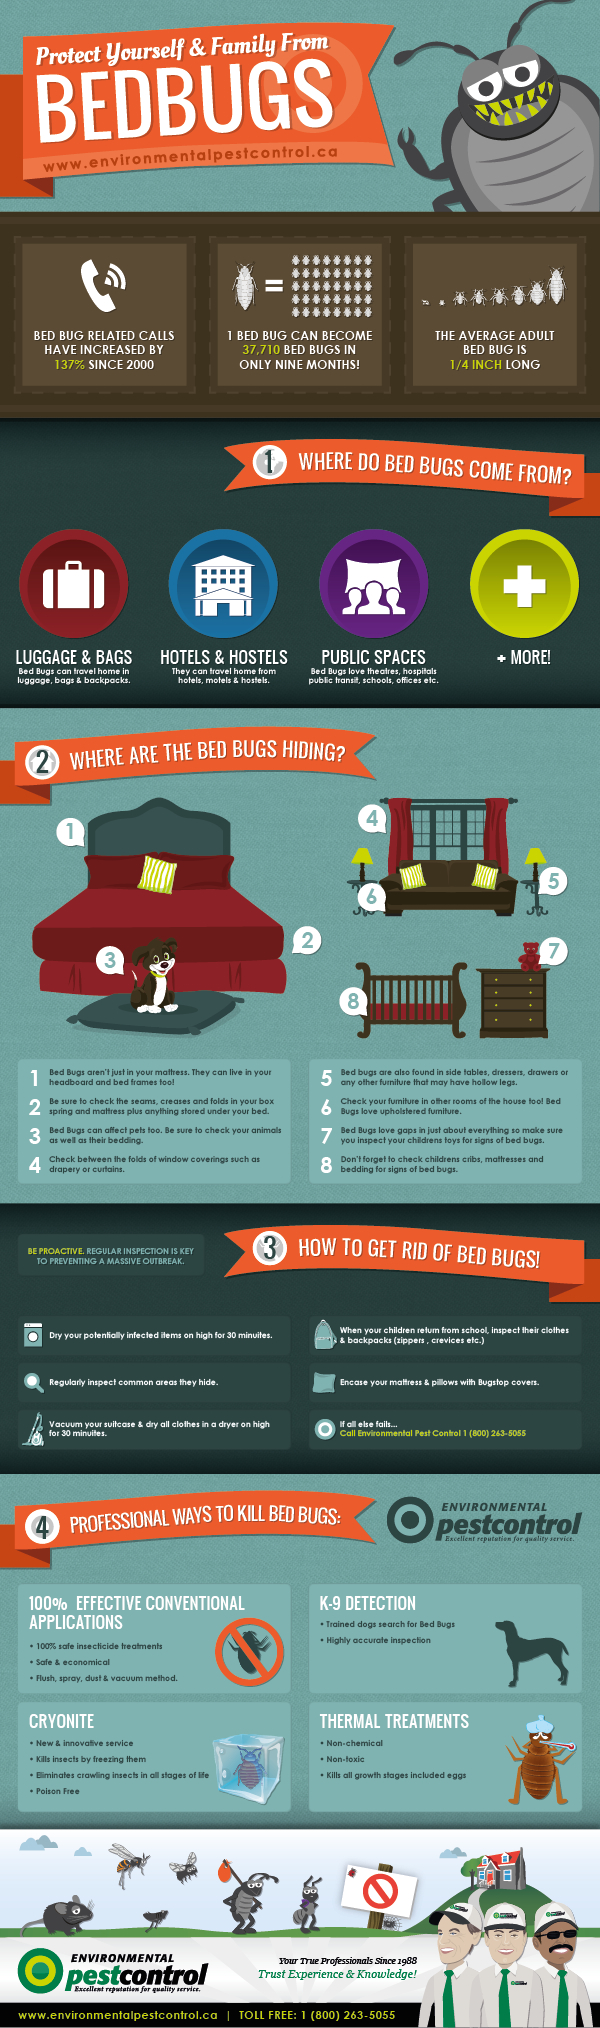 Bed Bugs Protect Yourself and Your Family! This